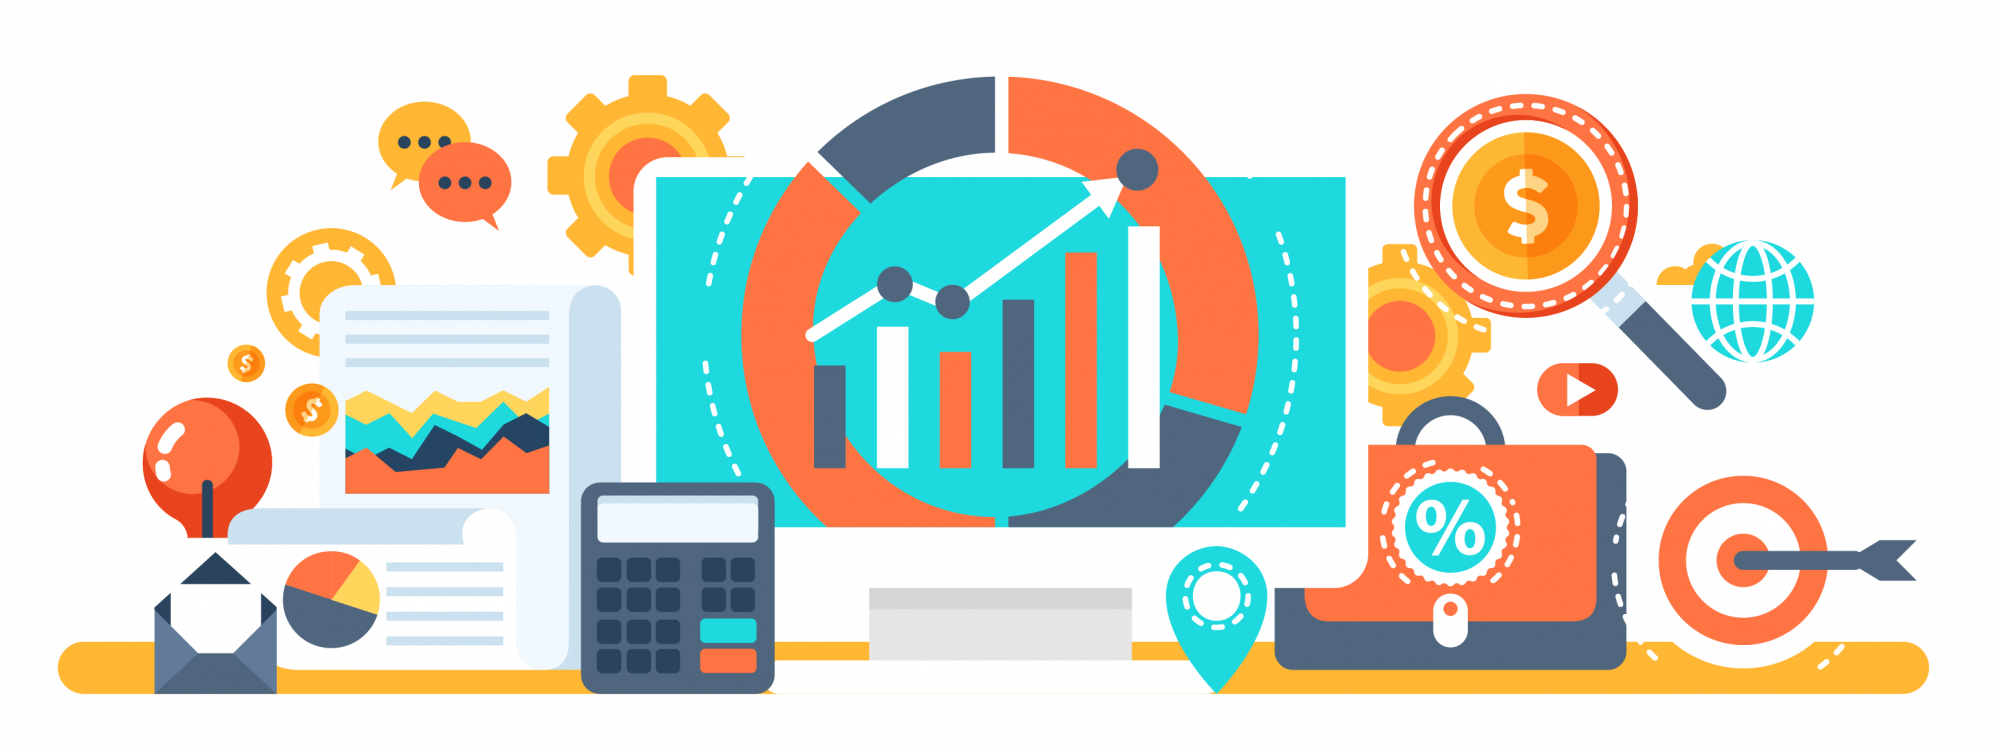 10 Ways to Increase Your Business' Growth Potential - OKMG